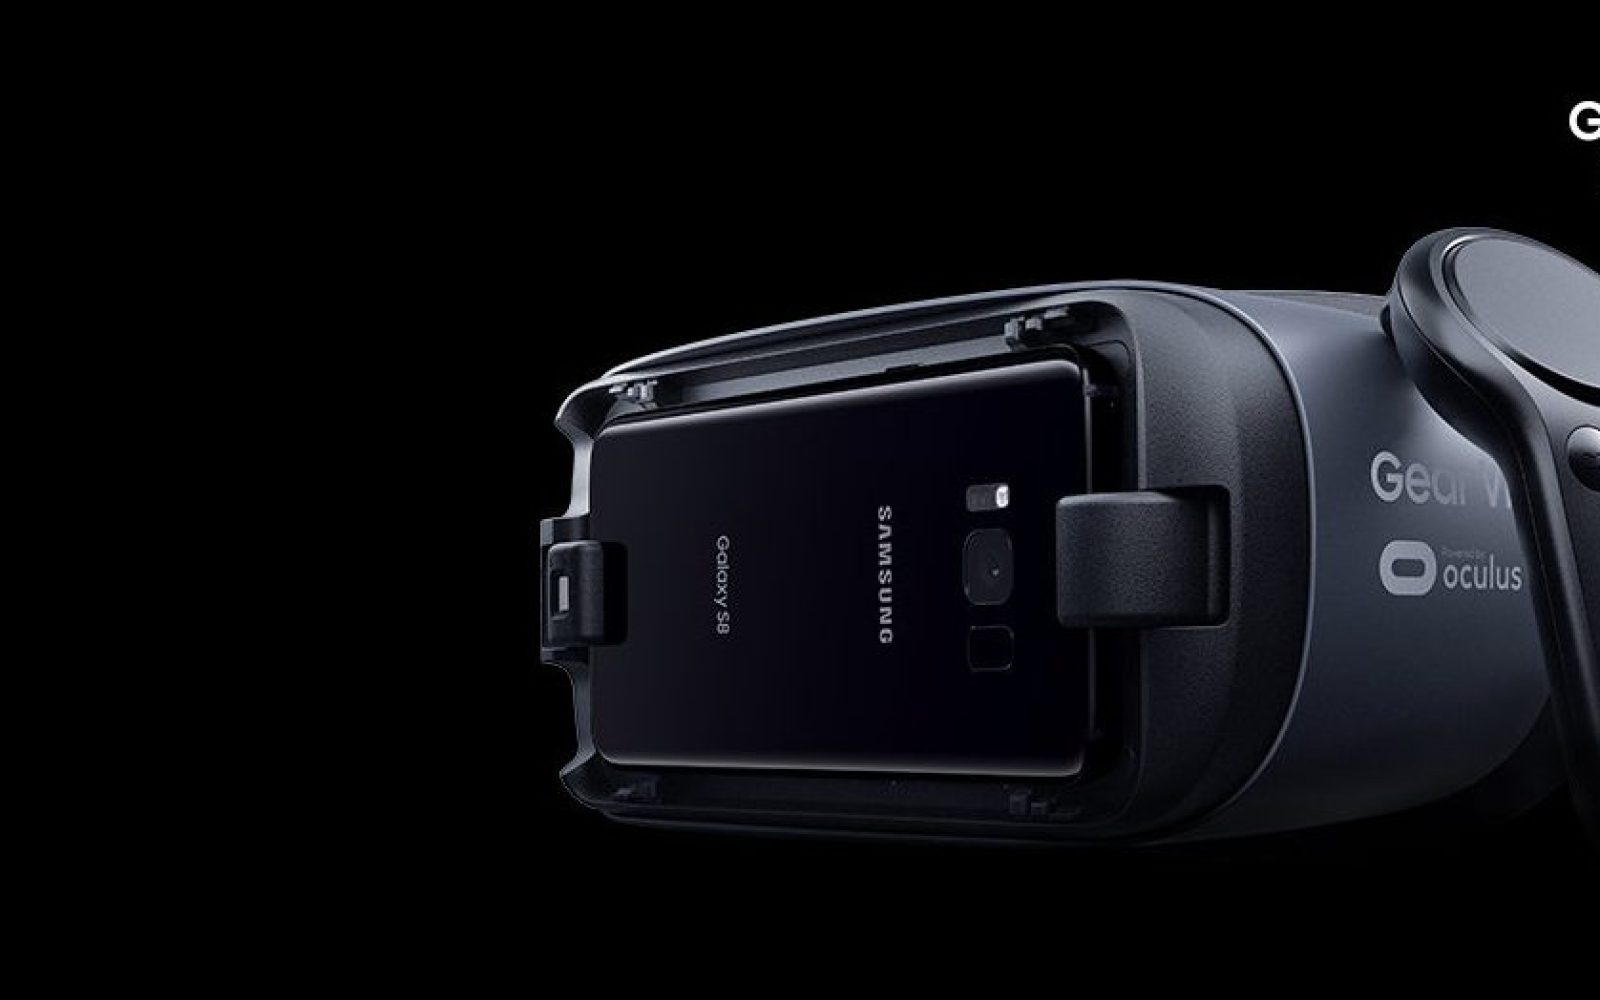 Samsung Gear VR headset now comes with a new controller, and